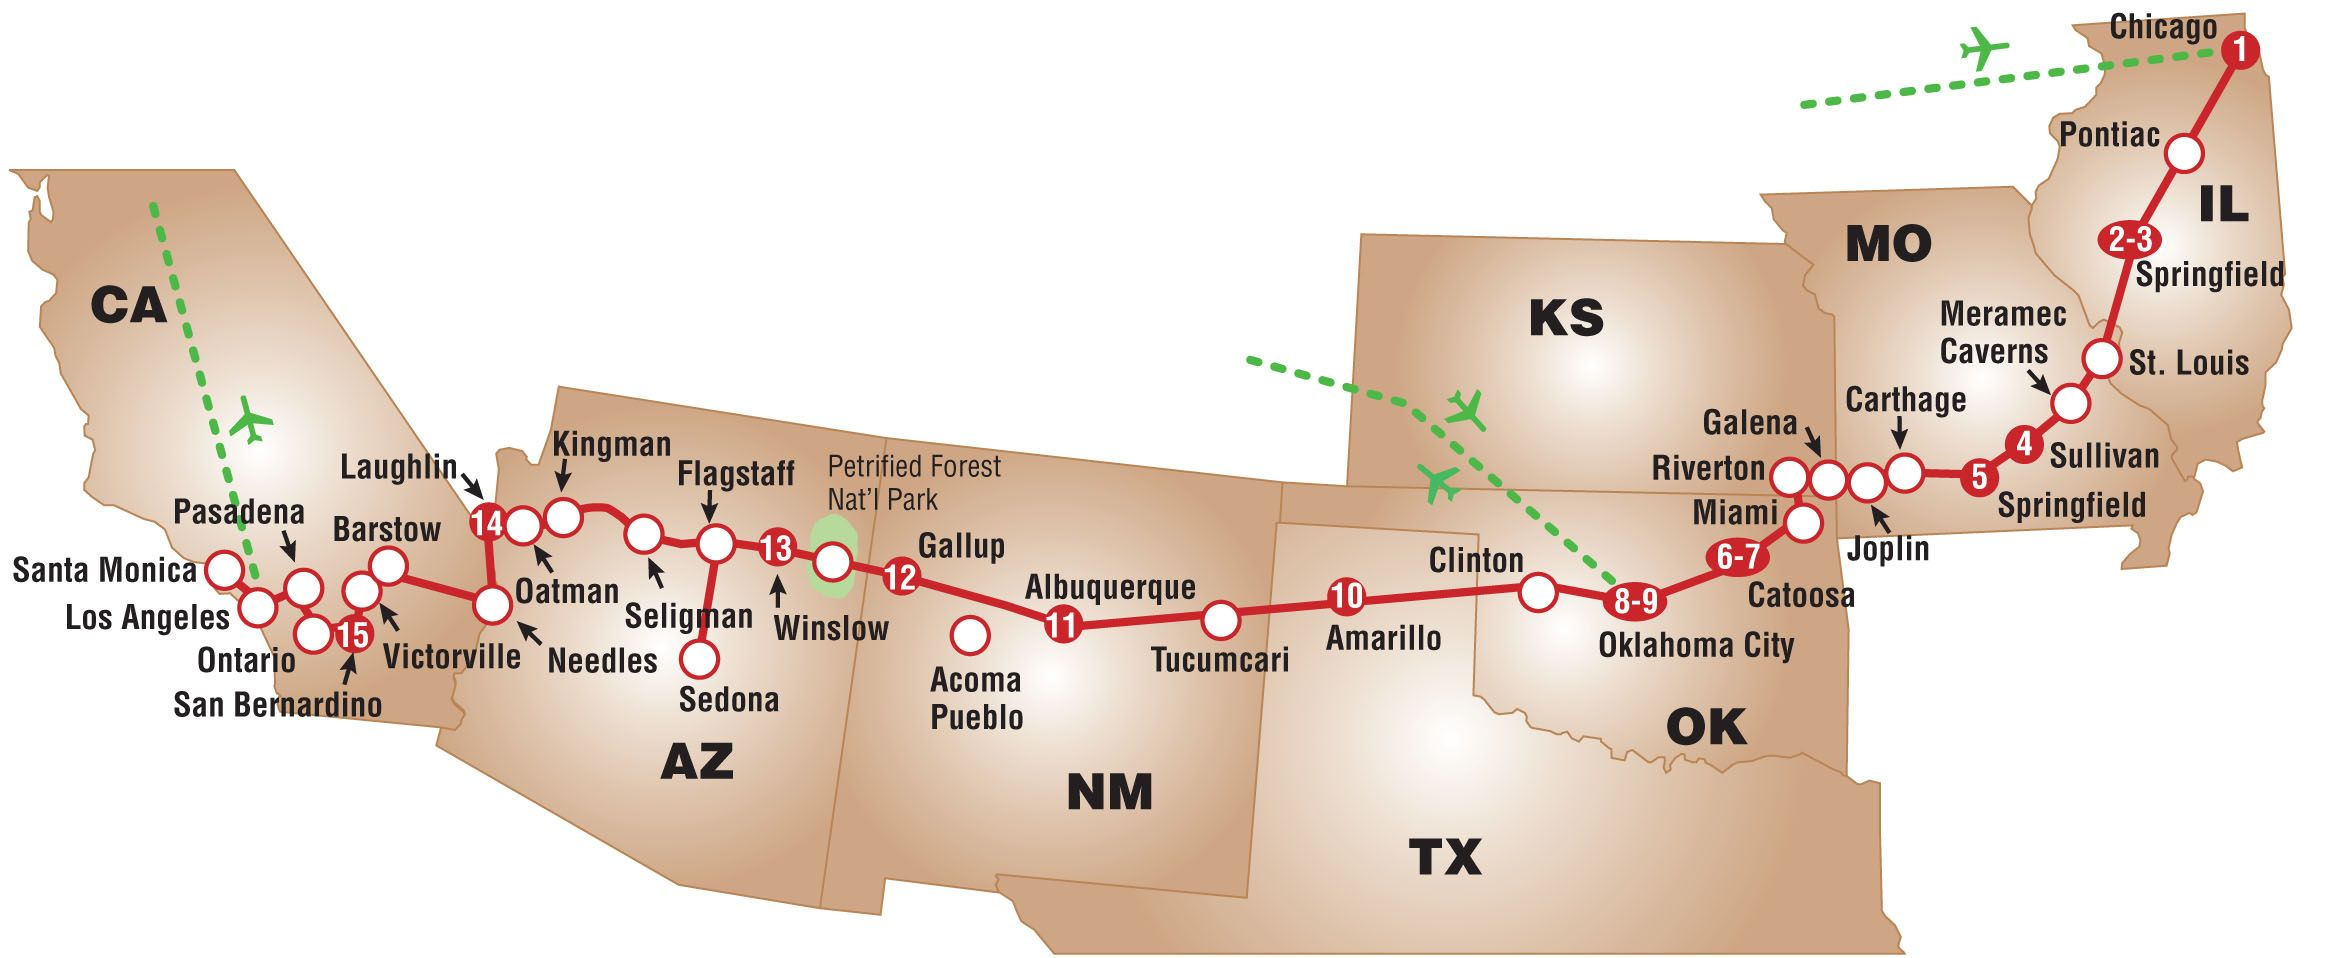 Map Of Old Route 66 Arizona.Entire Route 66 Map Start To Finish Route 66 Route 66 Route